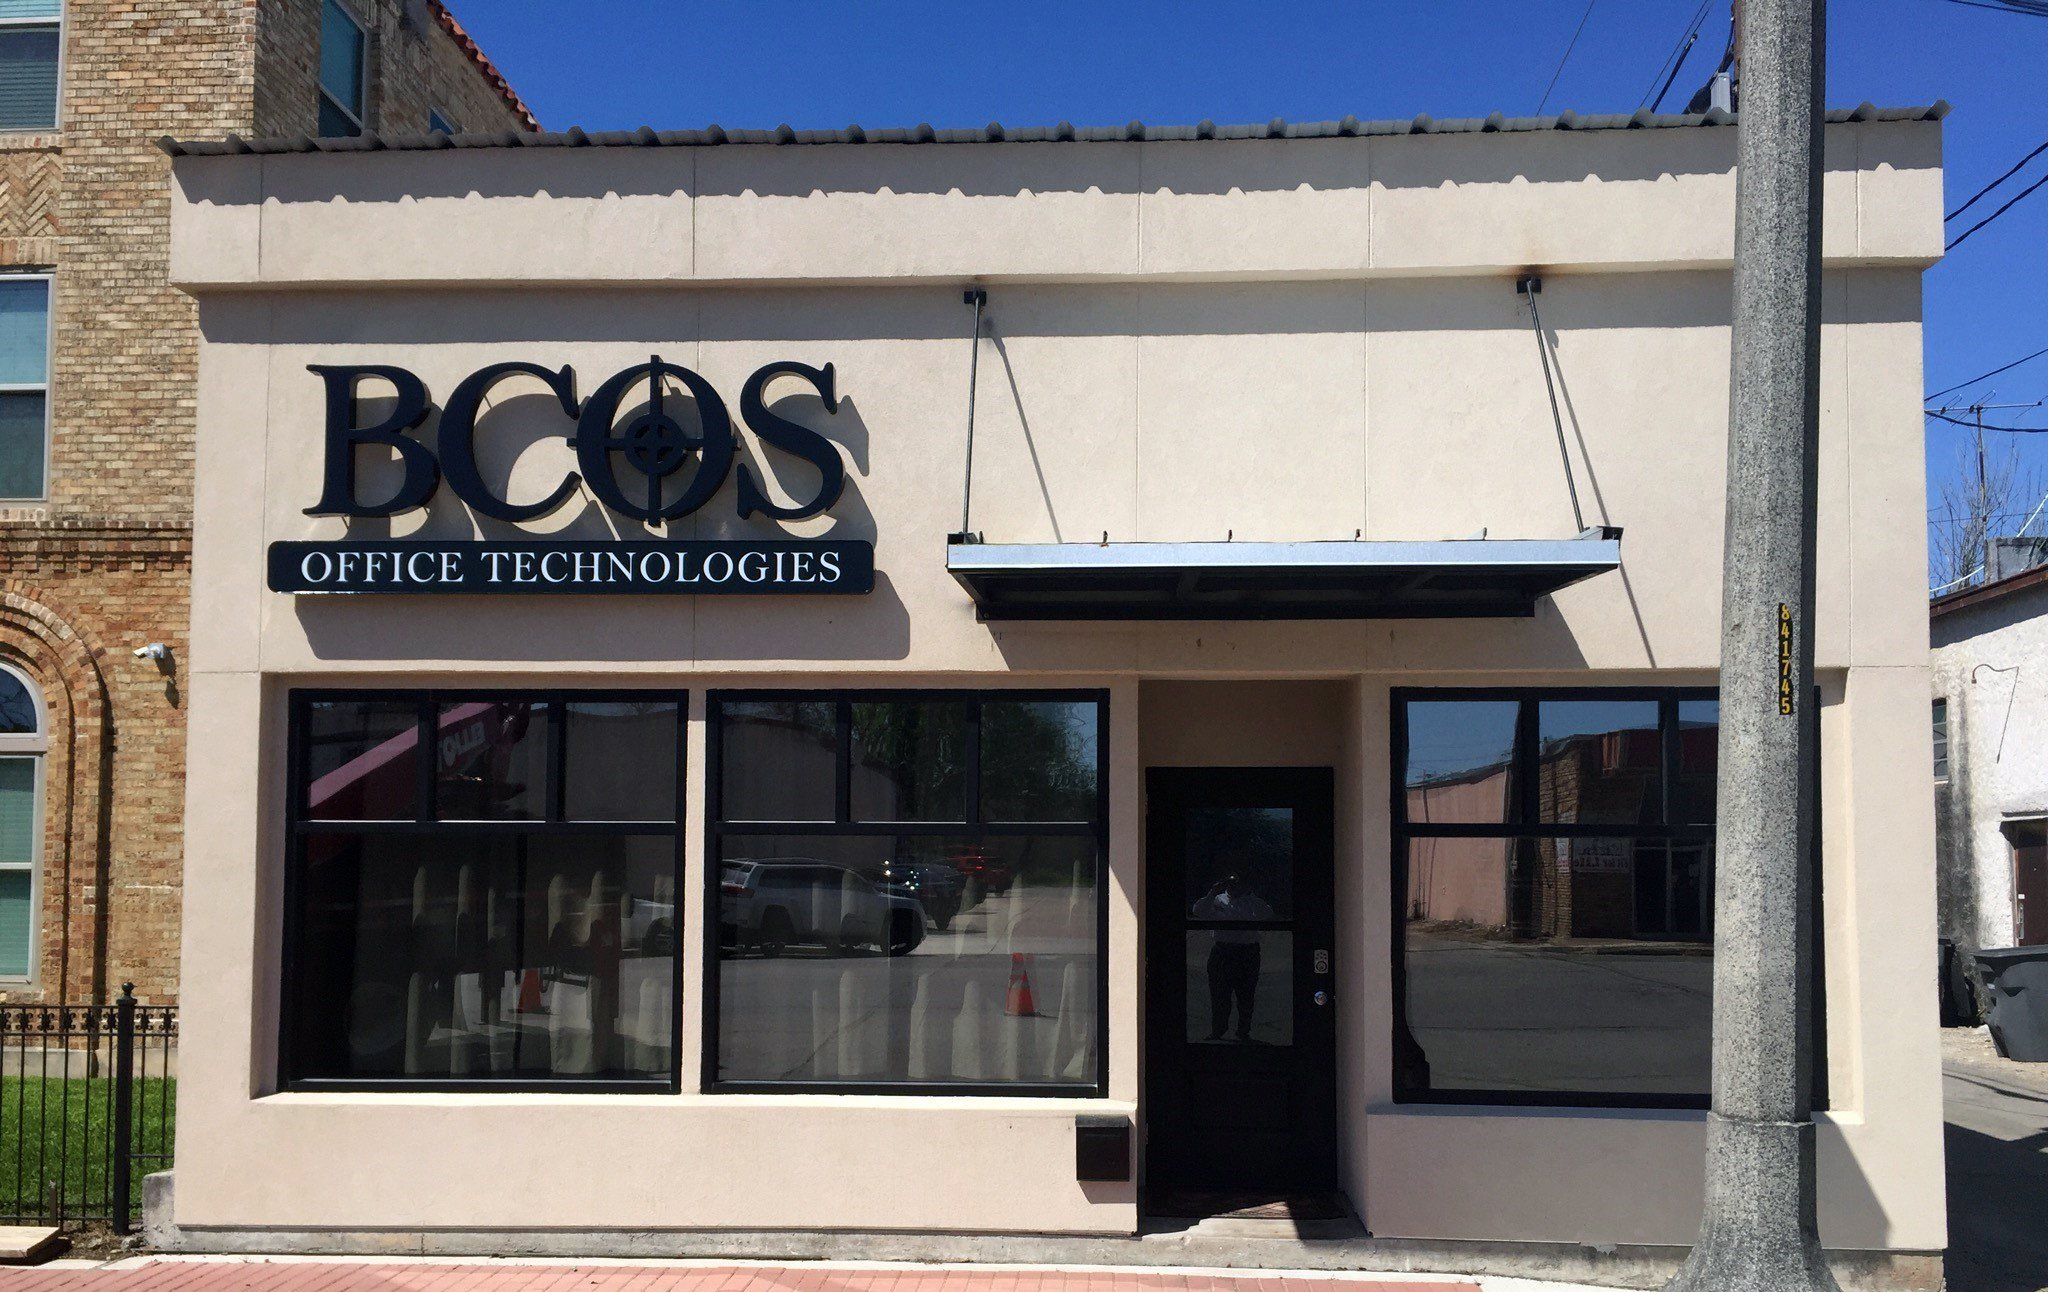 BCOS Bay City Rennovation  | BCOS Office Technologies (1)